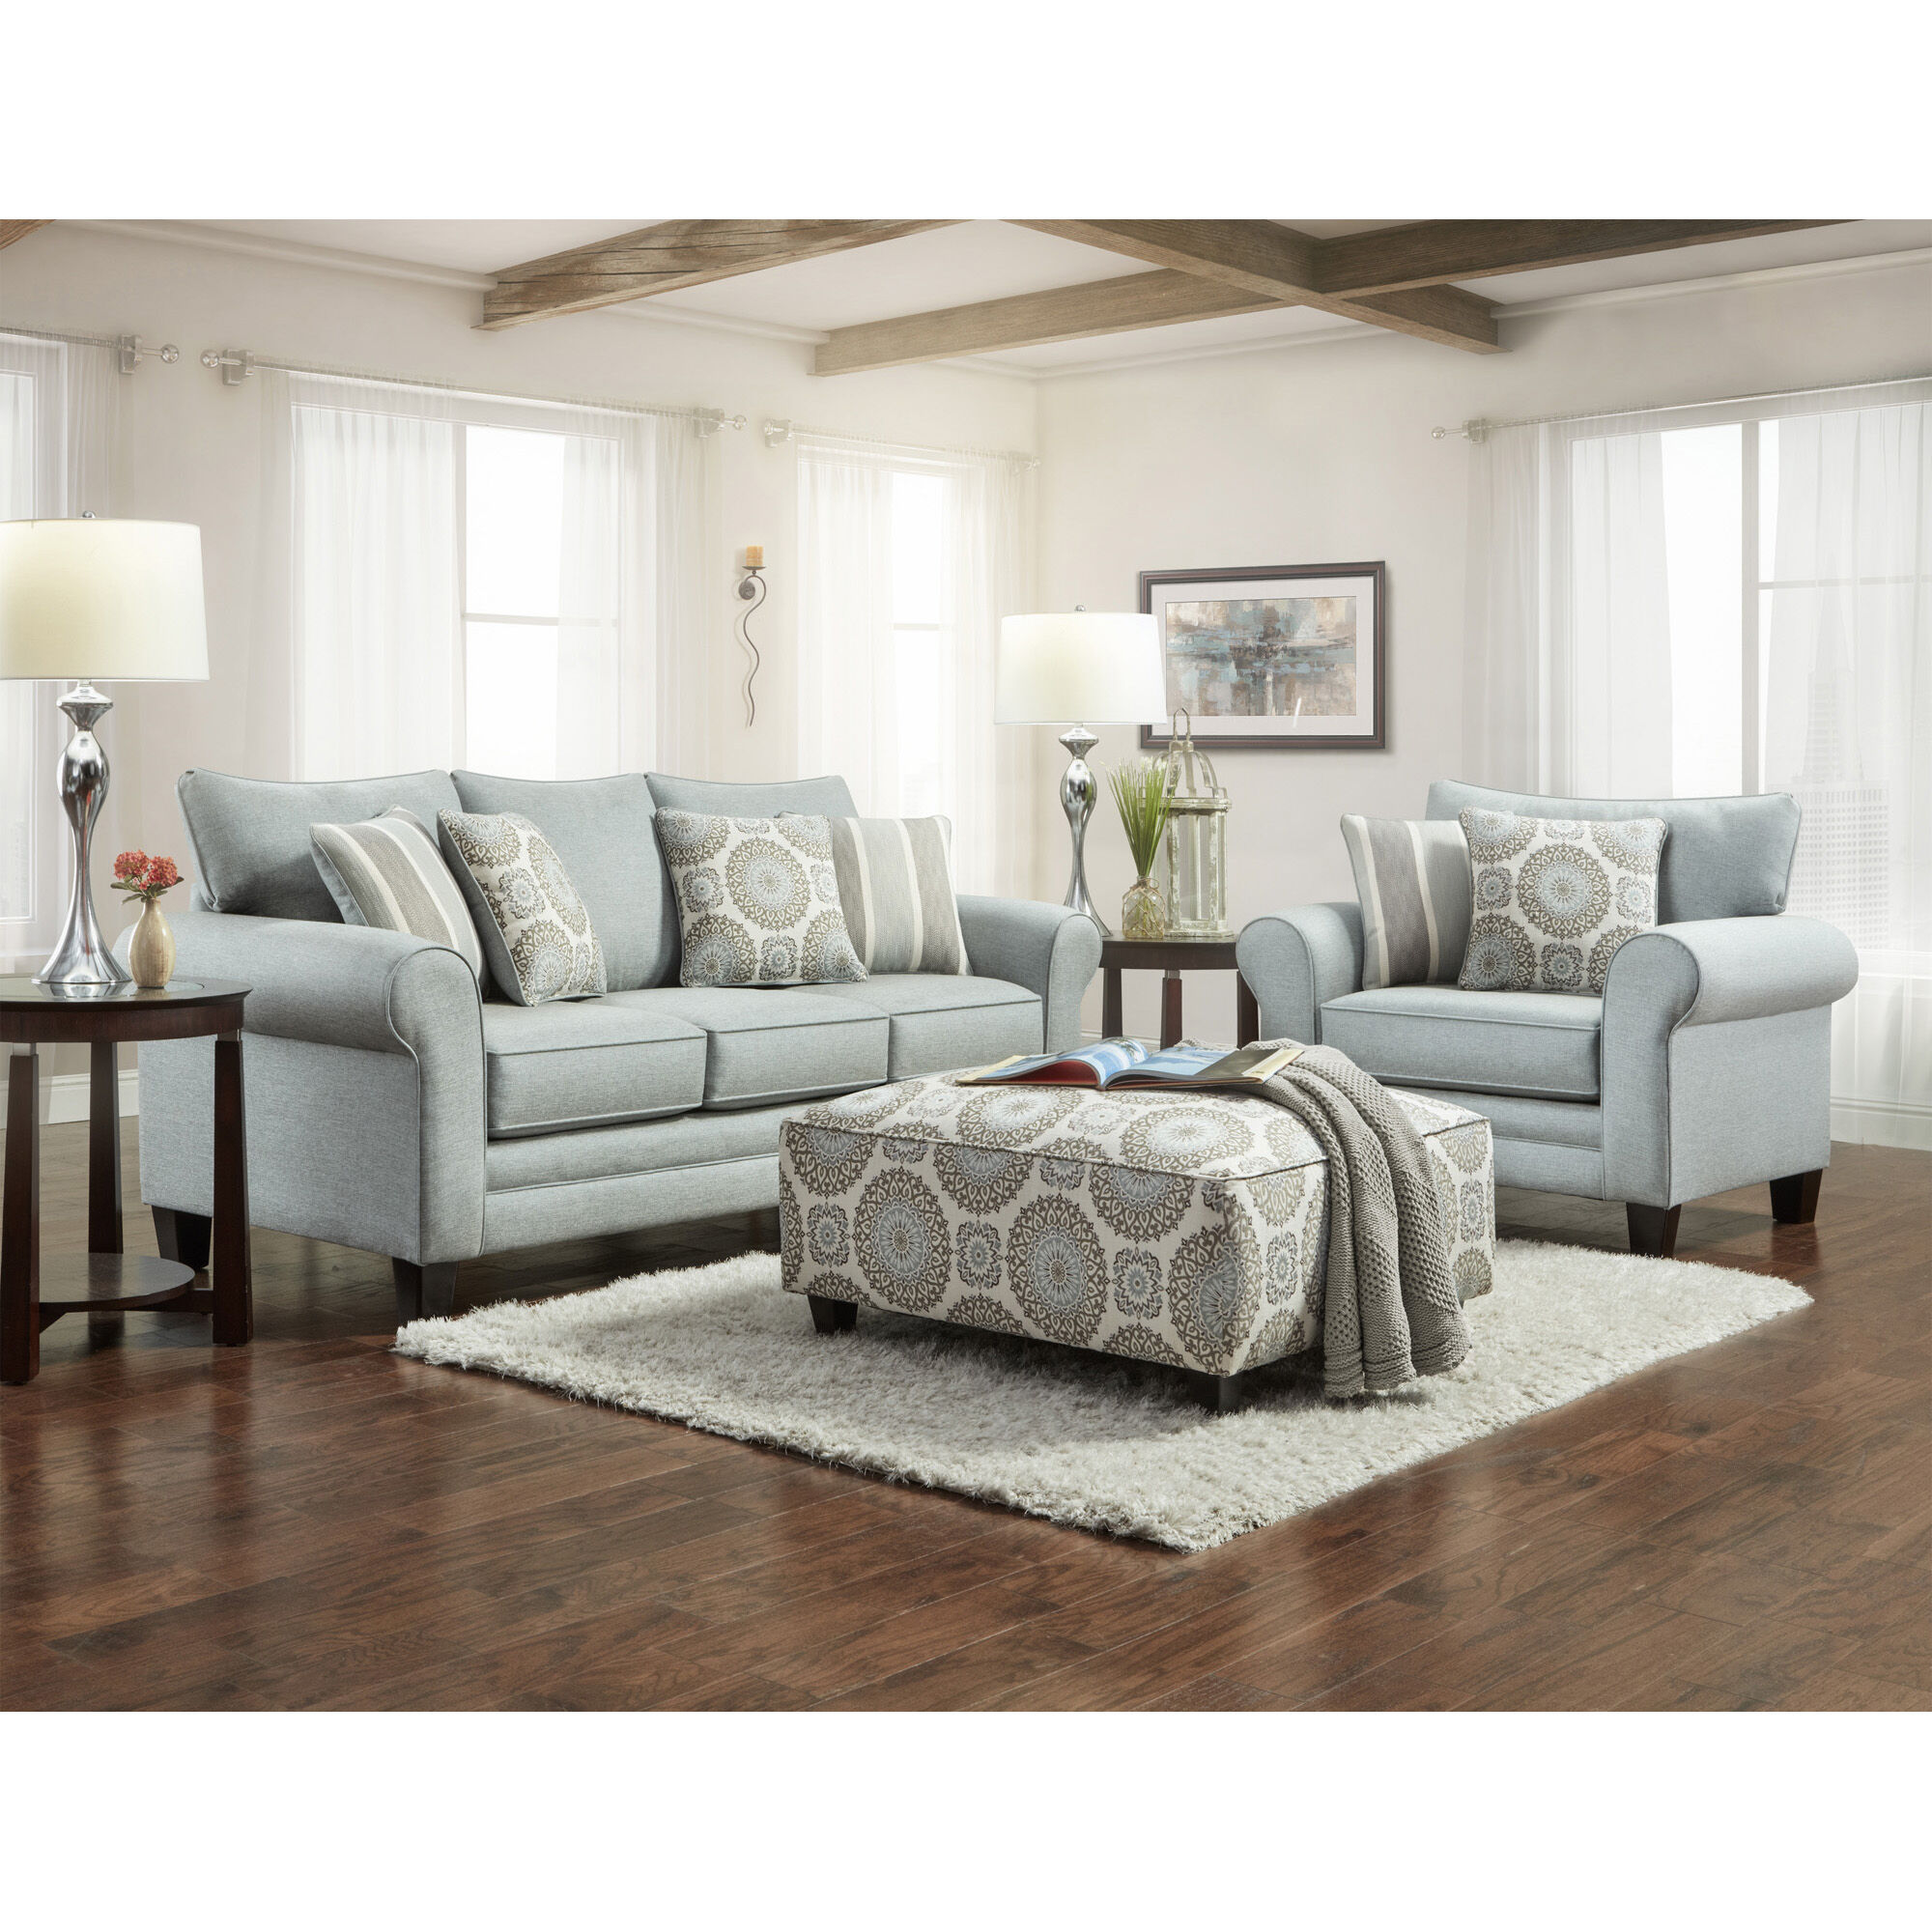 Fusion Furniture Living Room Sets 3Piece Lara Living Room Collection